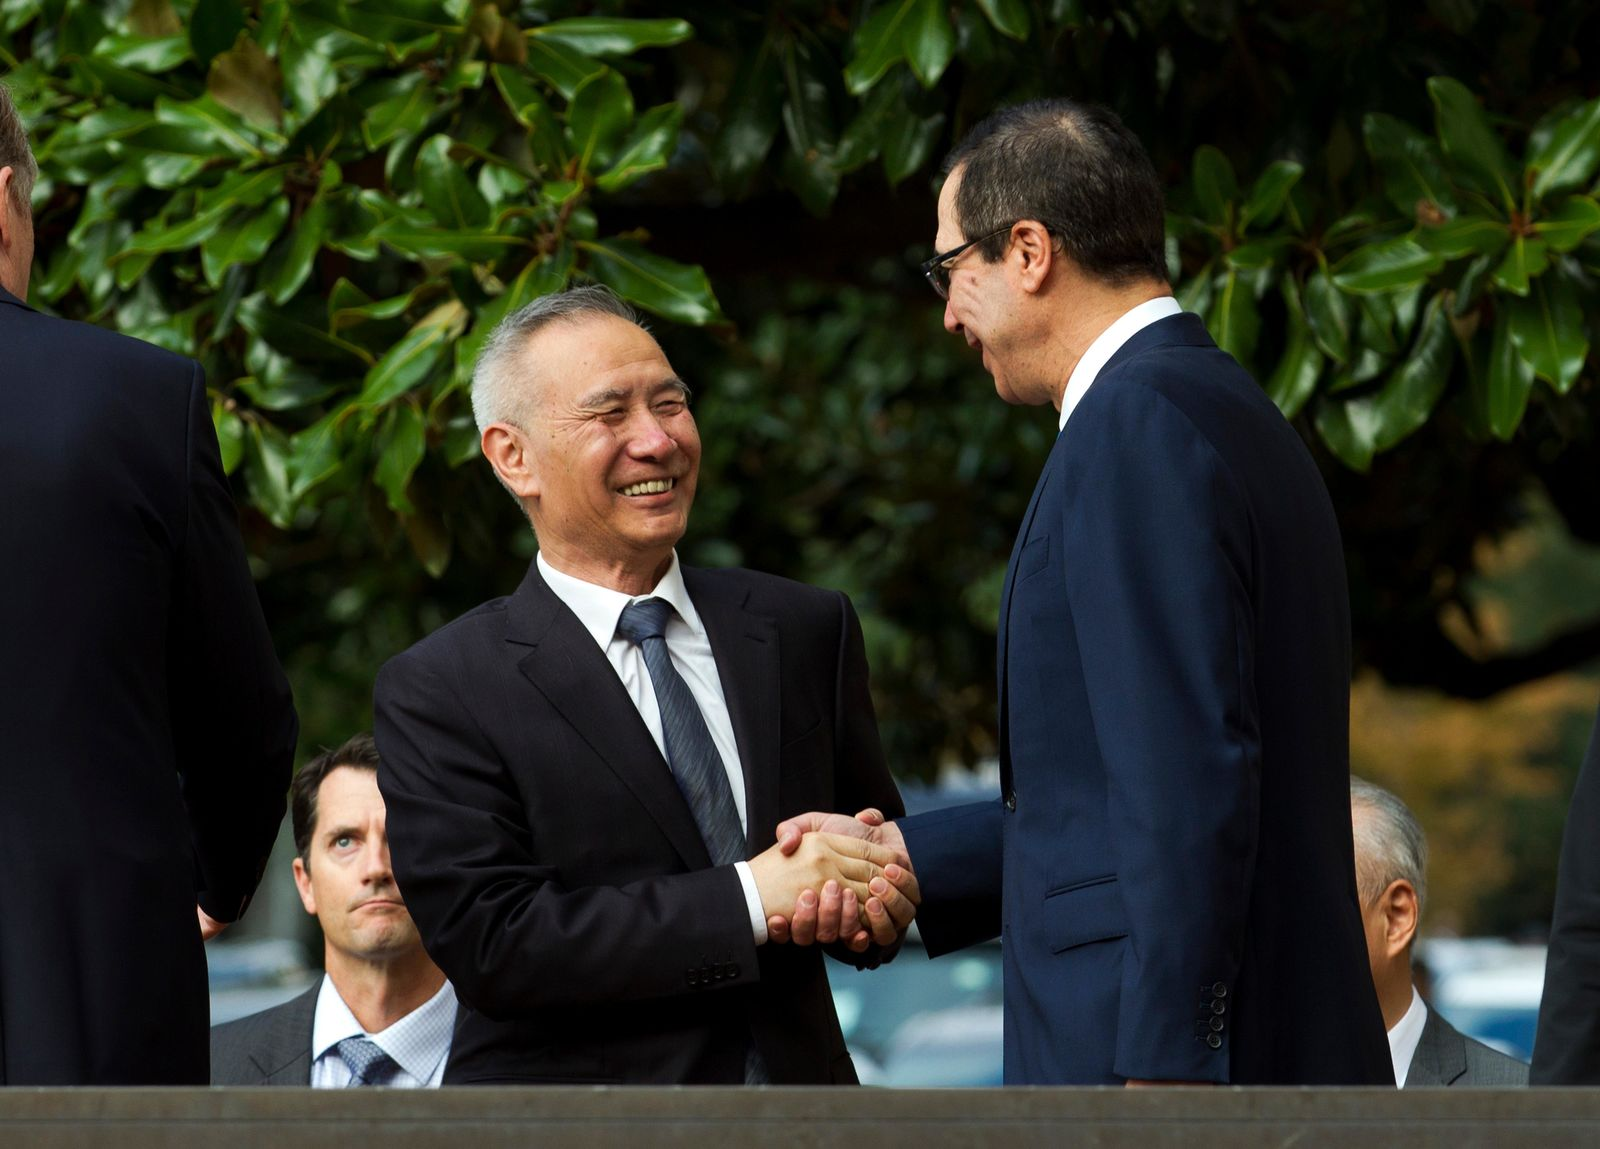 Chinese Vice Premier Liu He shake hands with Treasury Secretary Steven Mnuchin, as he arrives for a minister-level trade meeting in Washington, Thursday, Oct. 10, 2019. (AP Photo/Jose Luis Magana)